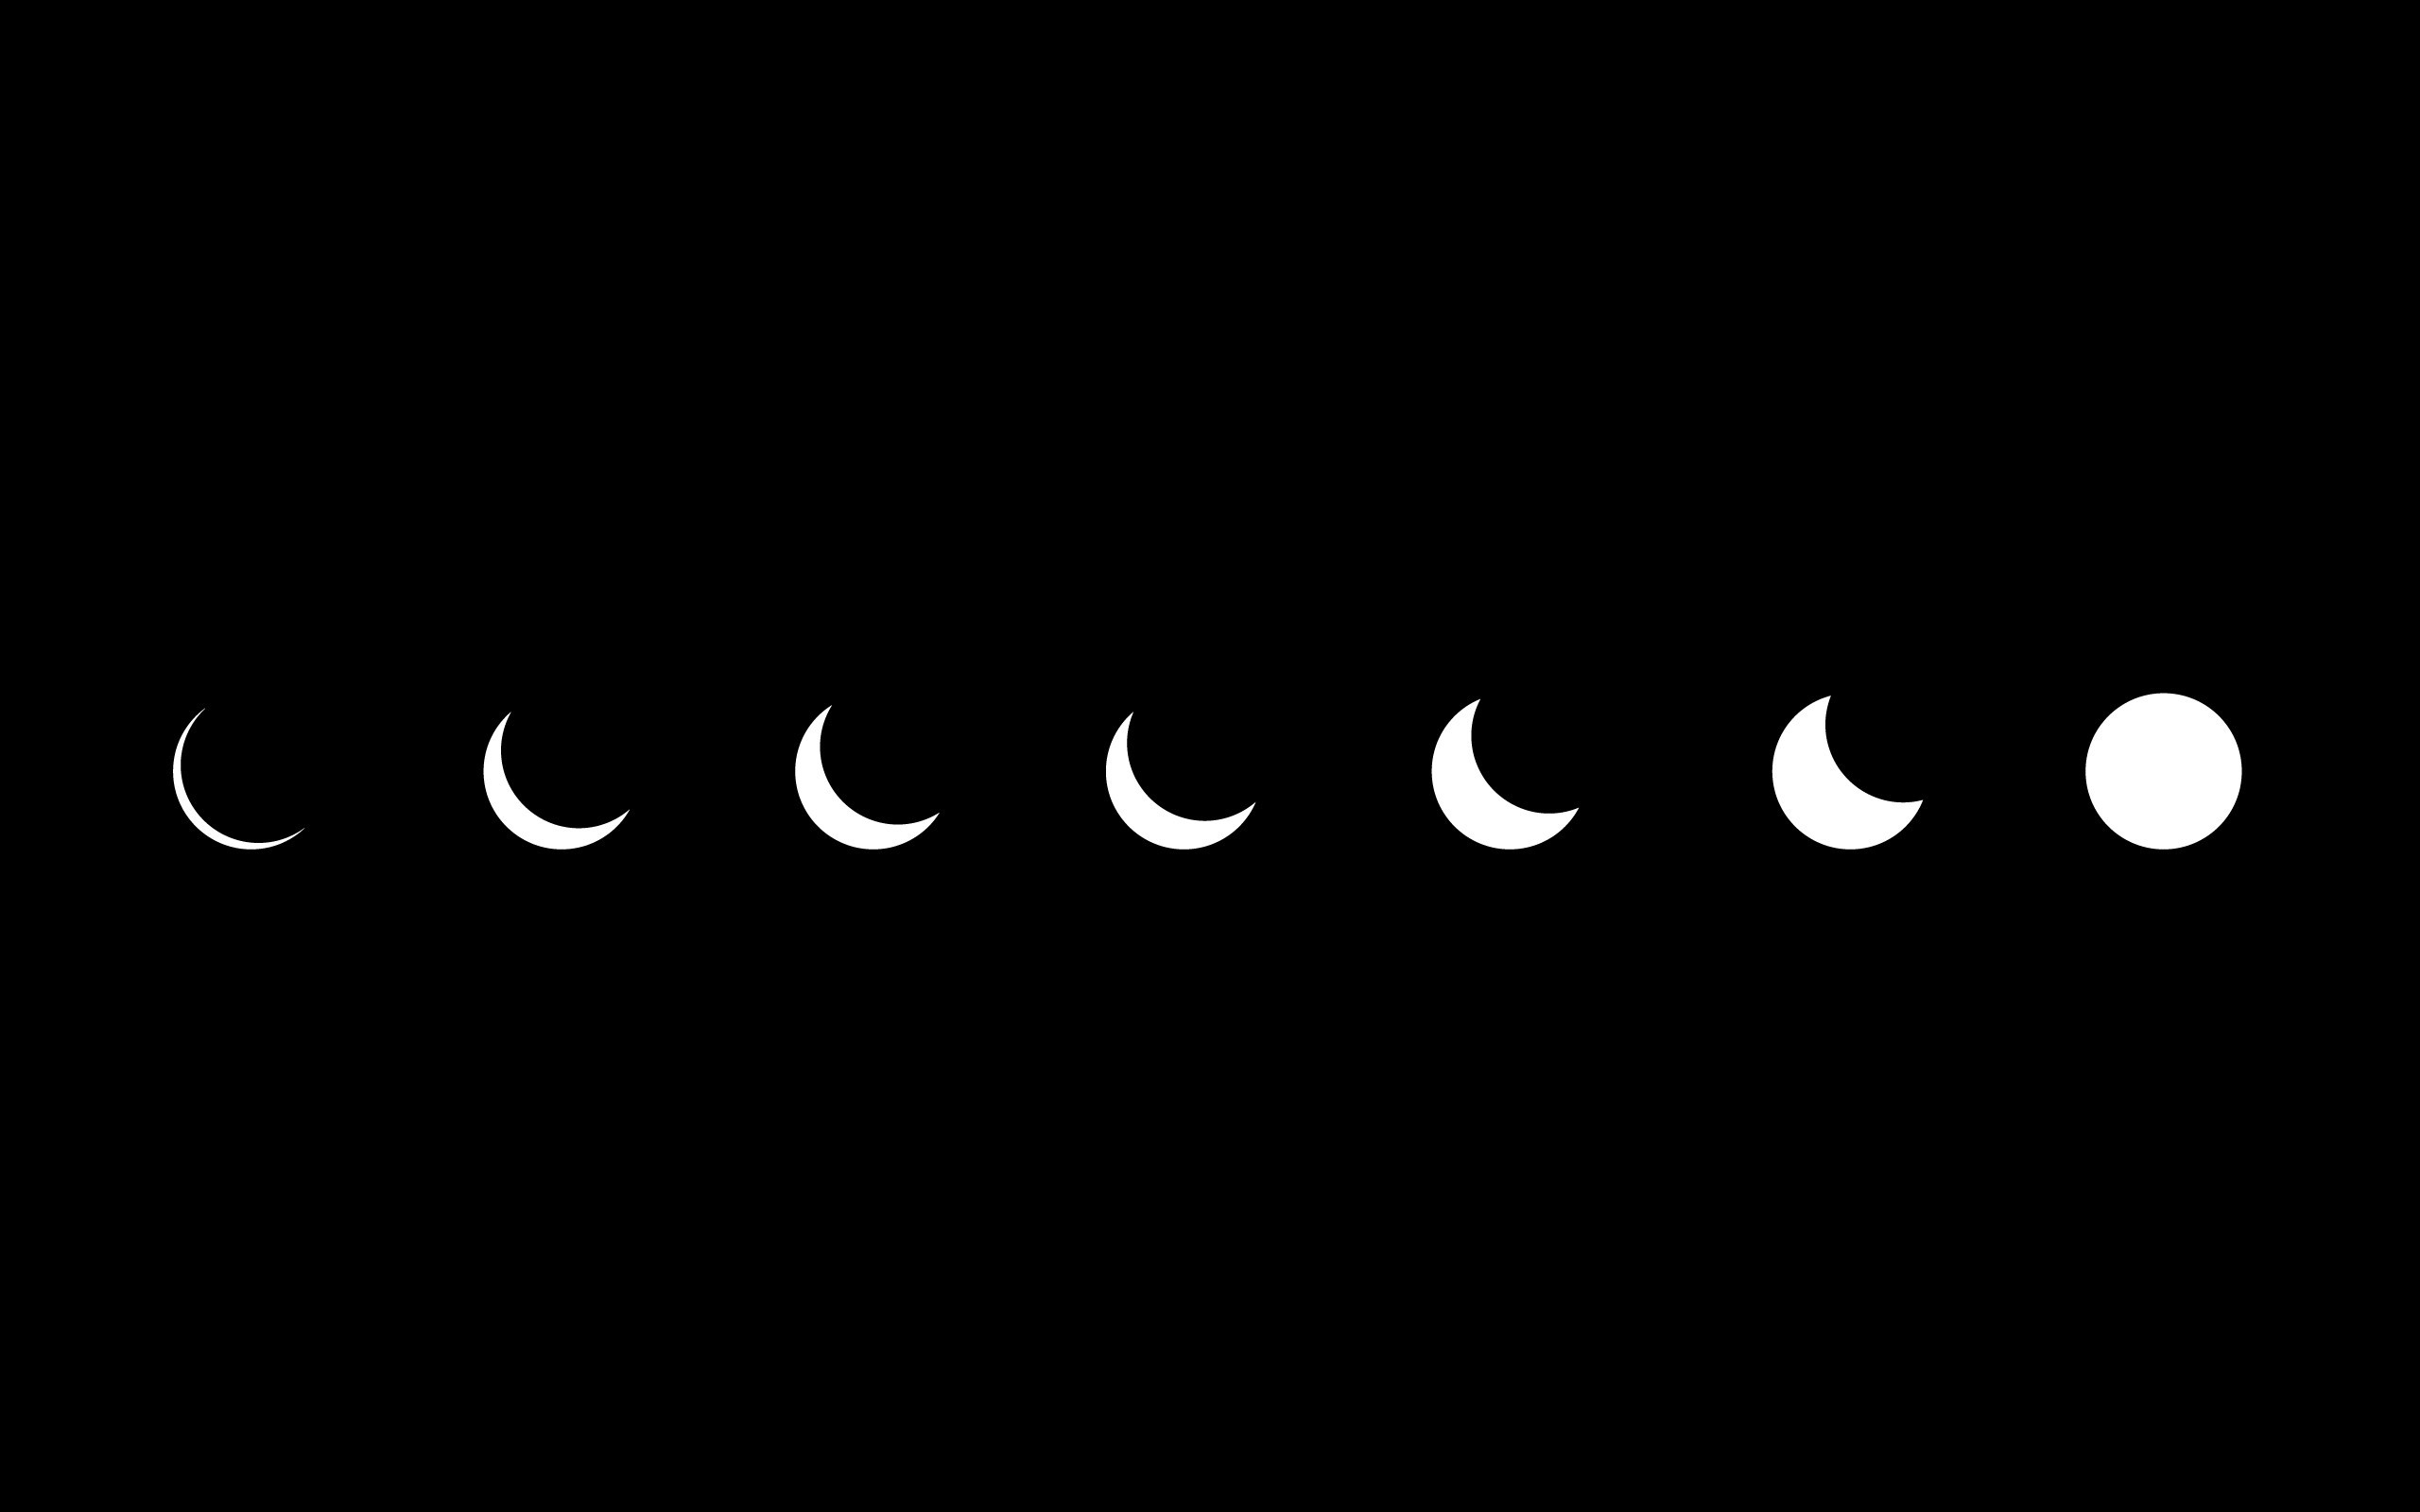 Pin for Later: 42 Inspiring Desktop Wallpapers to Tackle Anything Fases de  Lua by Arthur Andrini A simple lapse of the phases of the moon makes for an  …